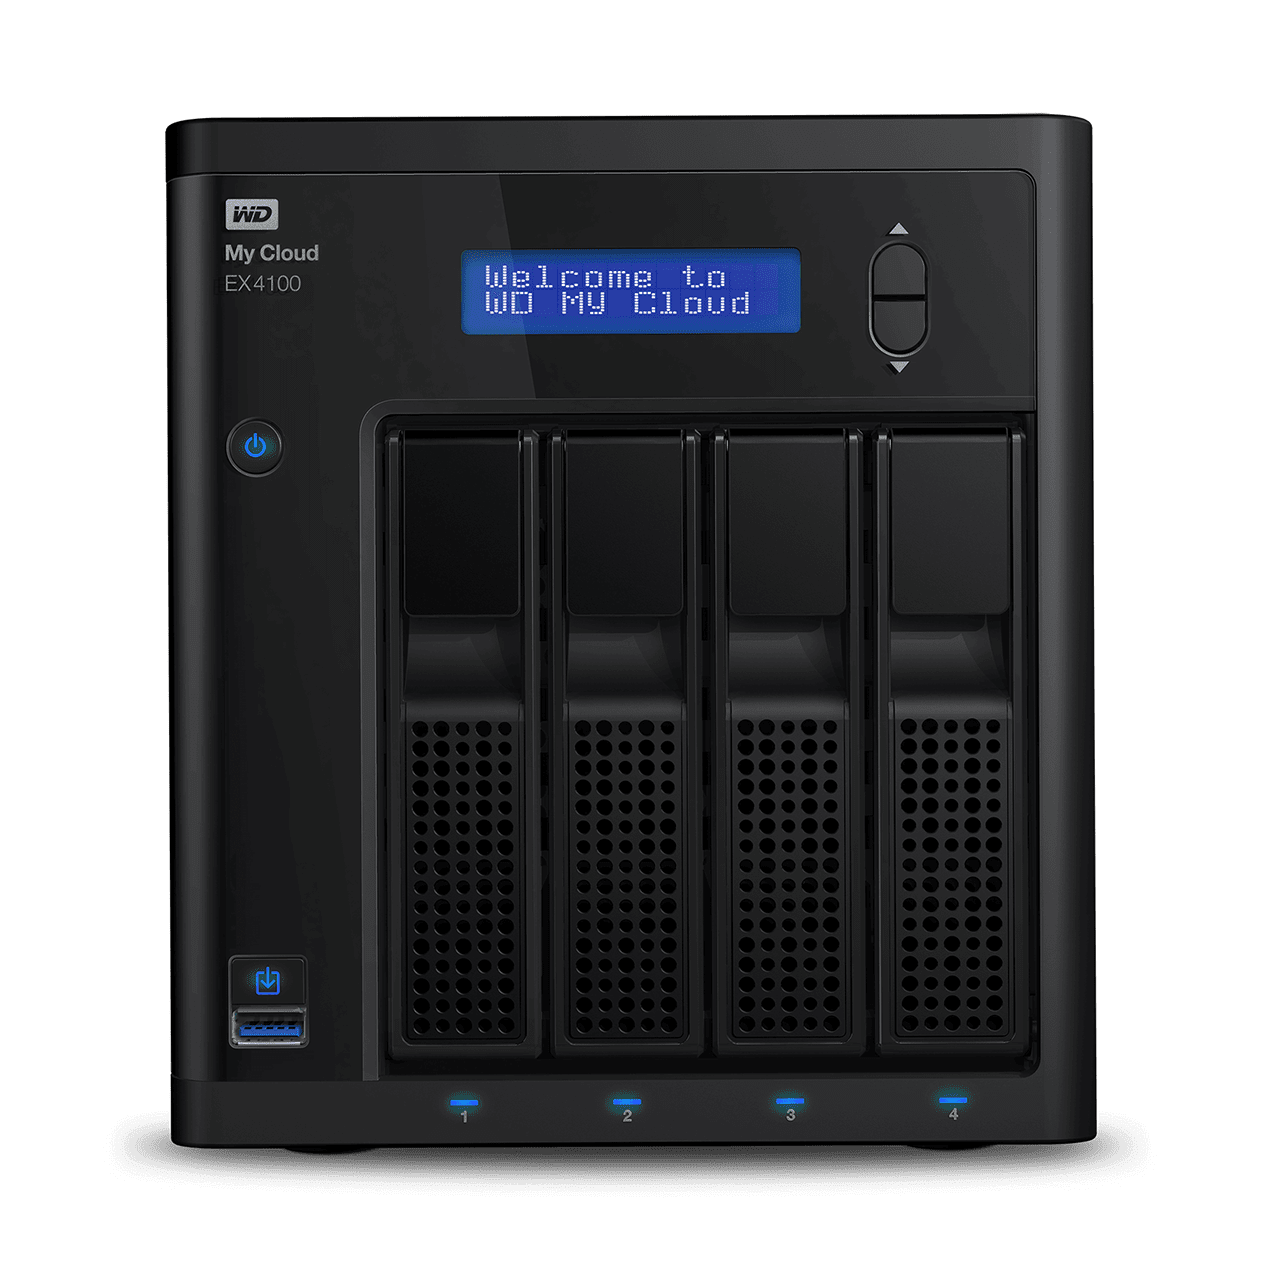 WD Western Digital My Cloud Expert Series EX4100 NAS / Cloud Storage 0TB/ 8TB/ 16TB/ 24TB/ 32TB , Network-attached storage